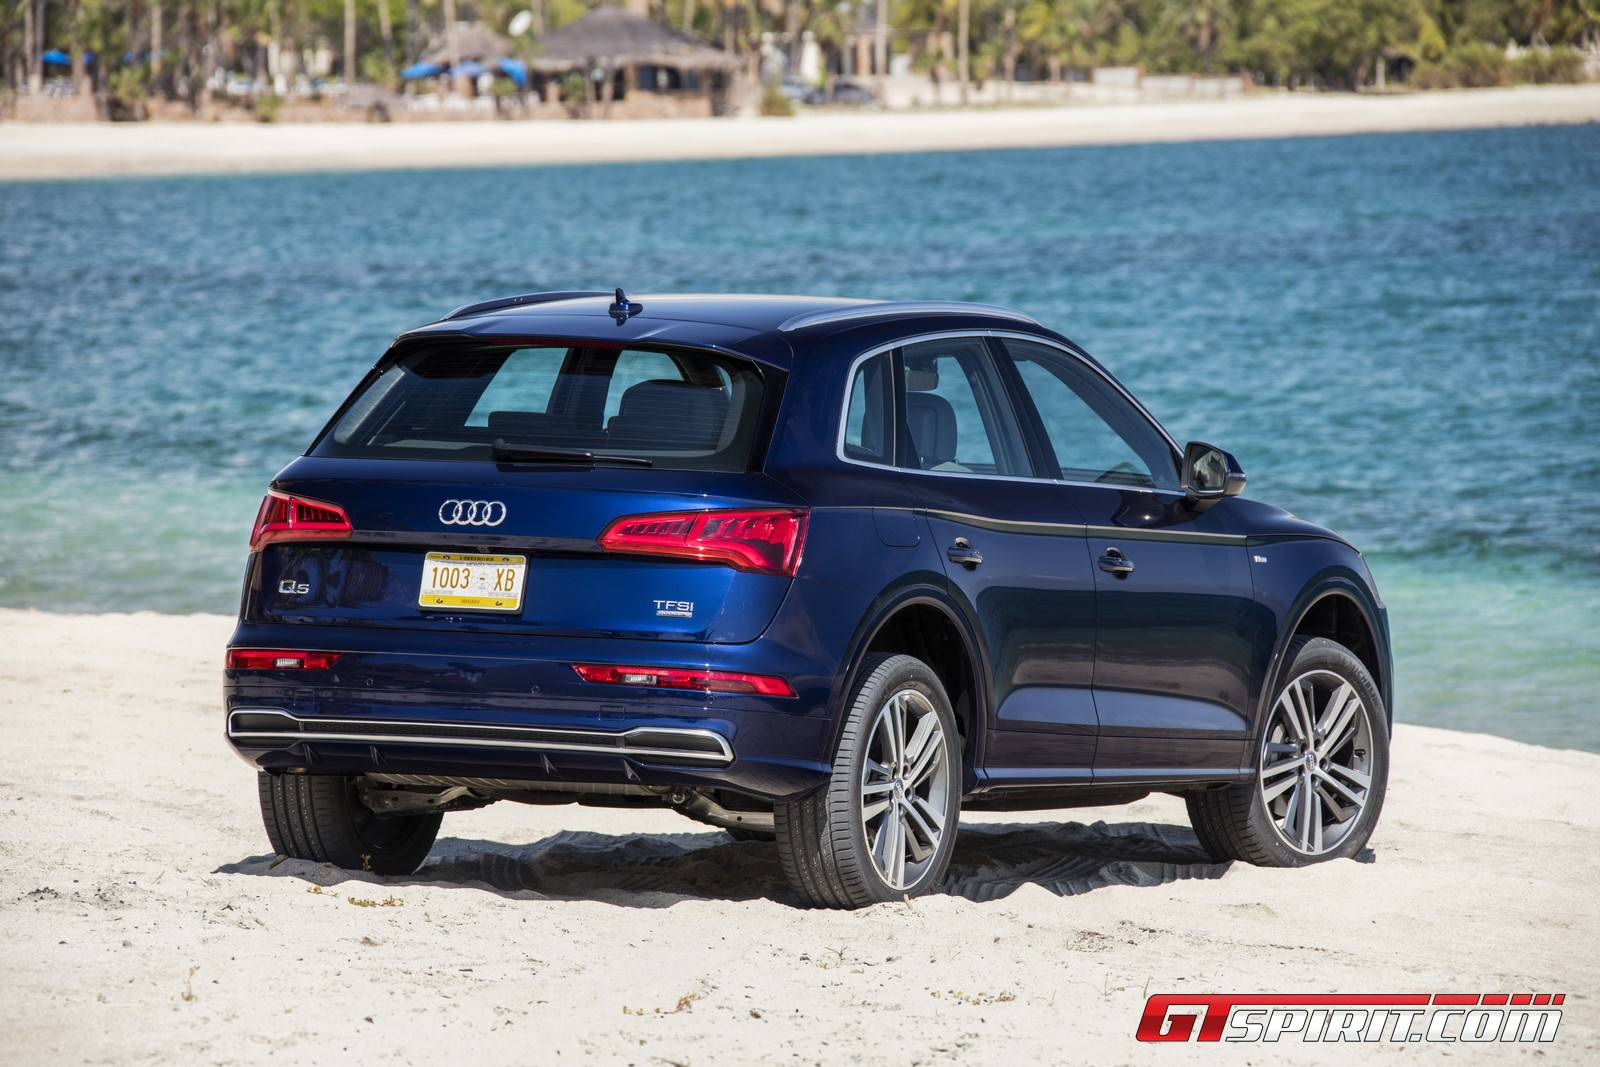 2017 Audi Q5 – The Second Generation Review - GTspirit